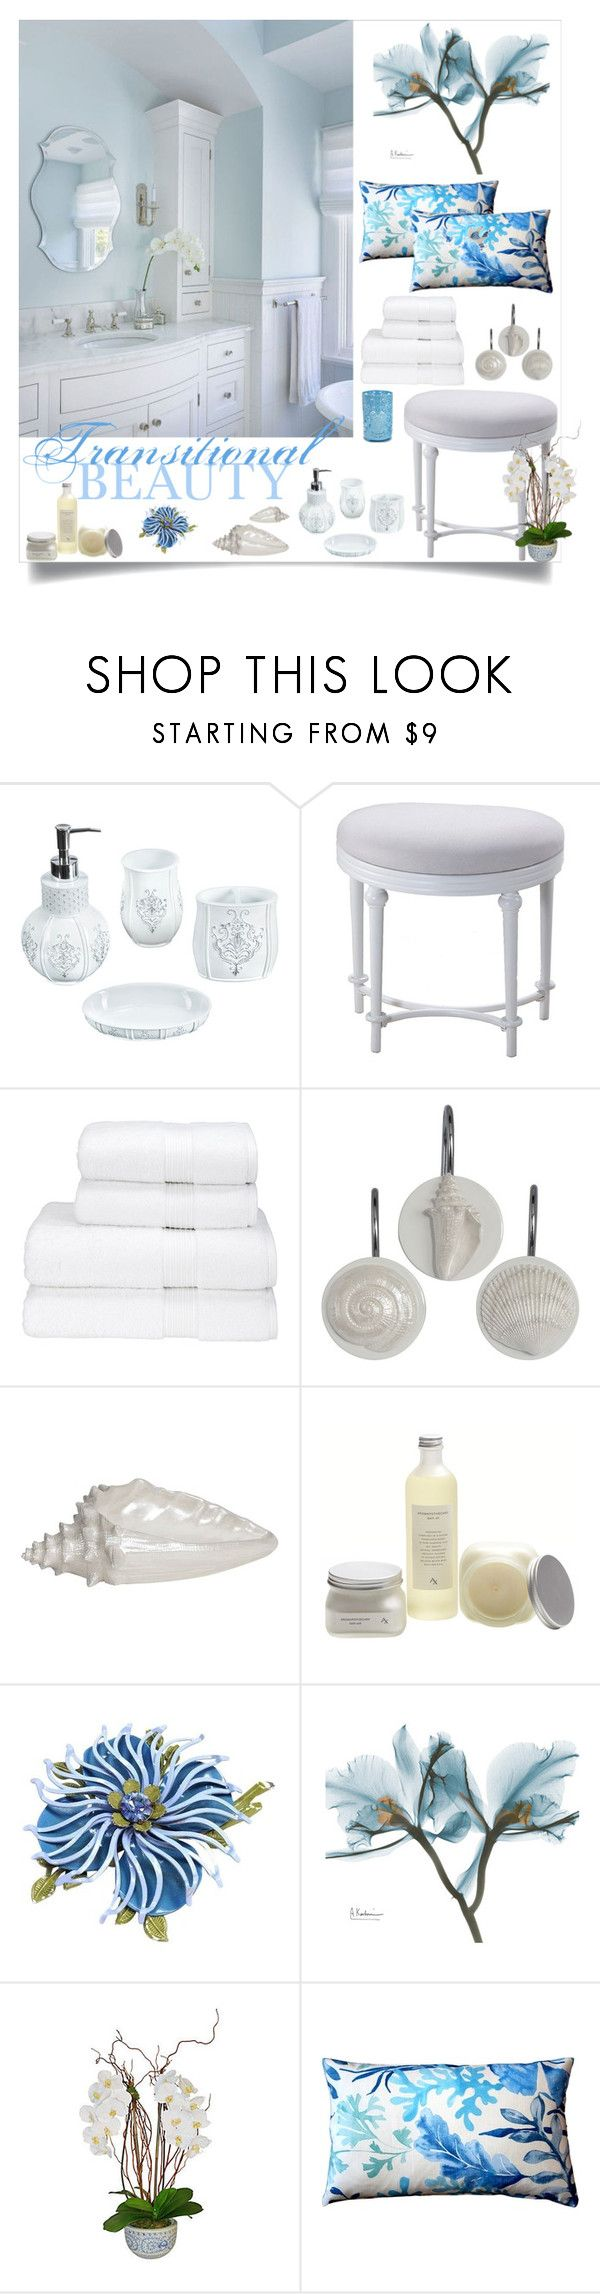 """""""Transitional Beauty"""" by loveartrecyclekardstock ❤ liked on Polyvore featuring interior, interiors, interior design, home, home decor, interior decorating, Hillsdale Furniture, Christy, Creative Bath Products and The French Bee"""